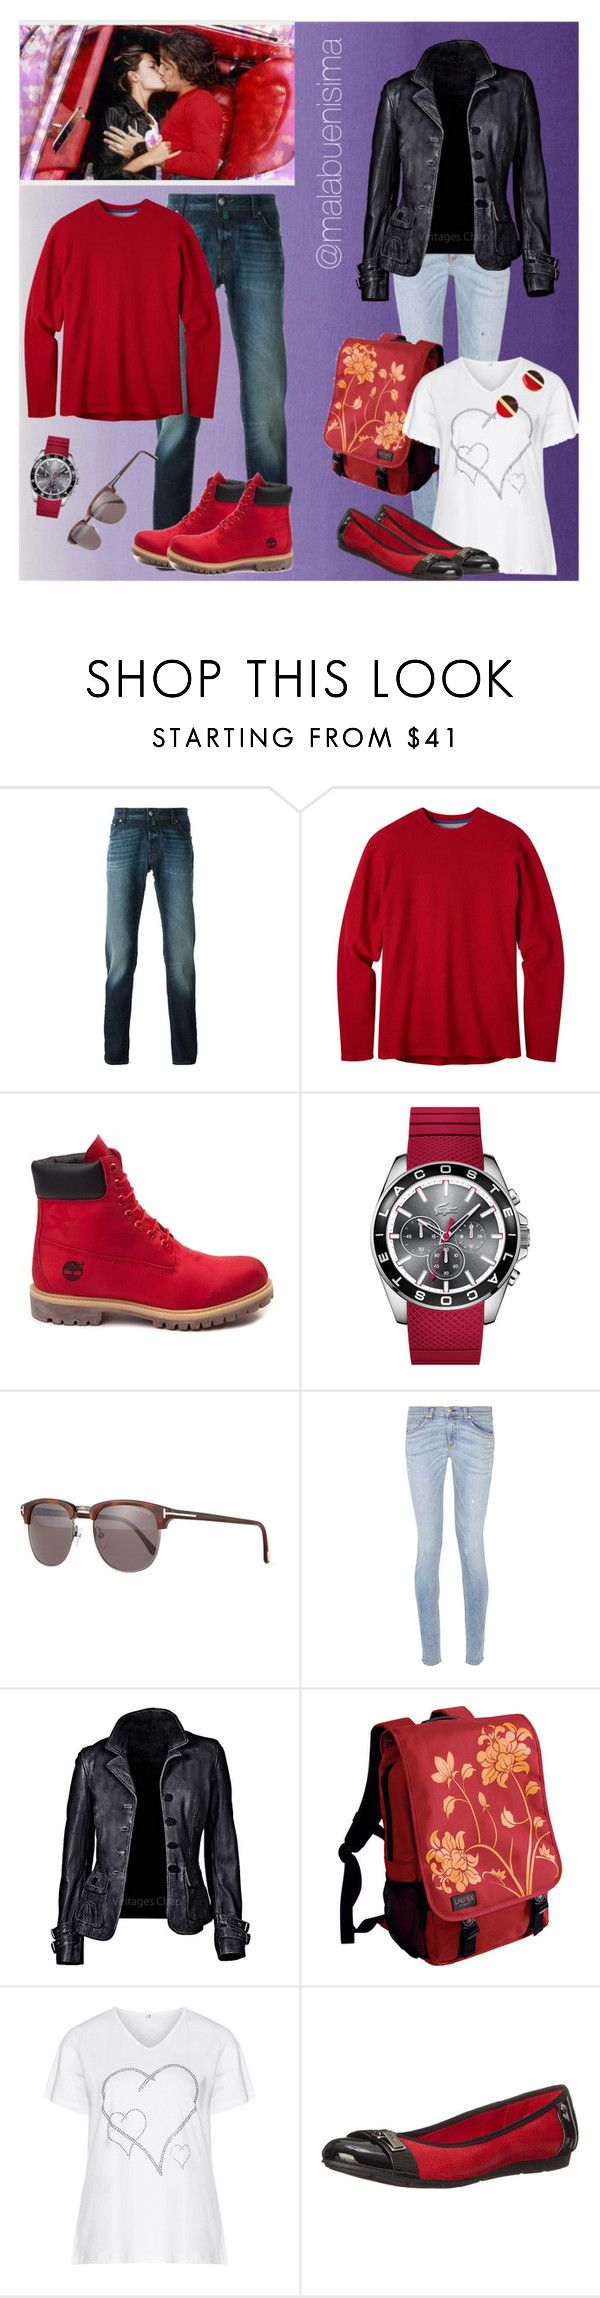 """""""Couple Sets One"""" by malabuenisima ❤ liked on Polyvore featuring Jacob Cohёn, Mountain Khakis, Timberland, Lacoste, Tom Ford, rag & bone, Laurex, Zhenzi, Anne Klein and Michael Kors"""